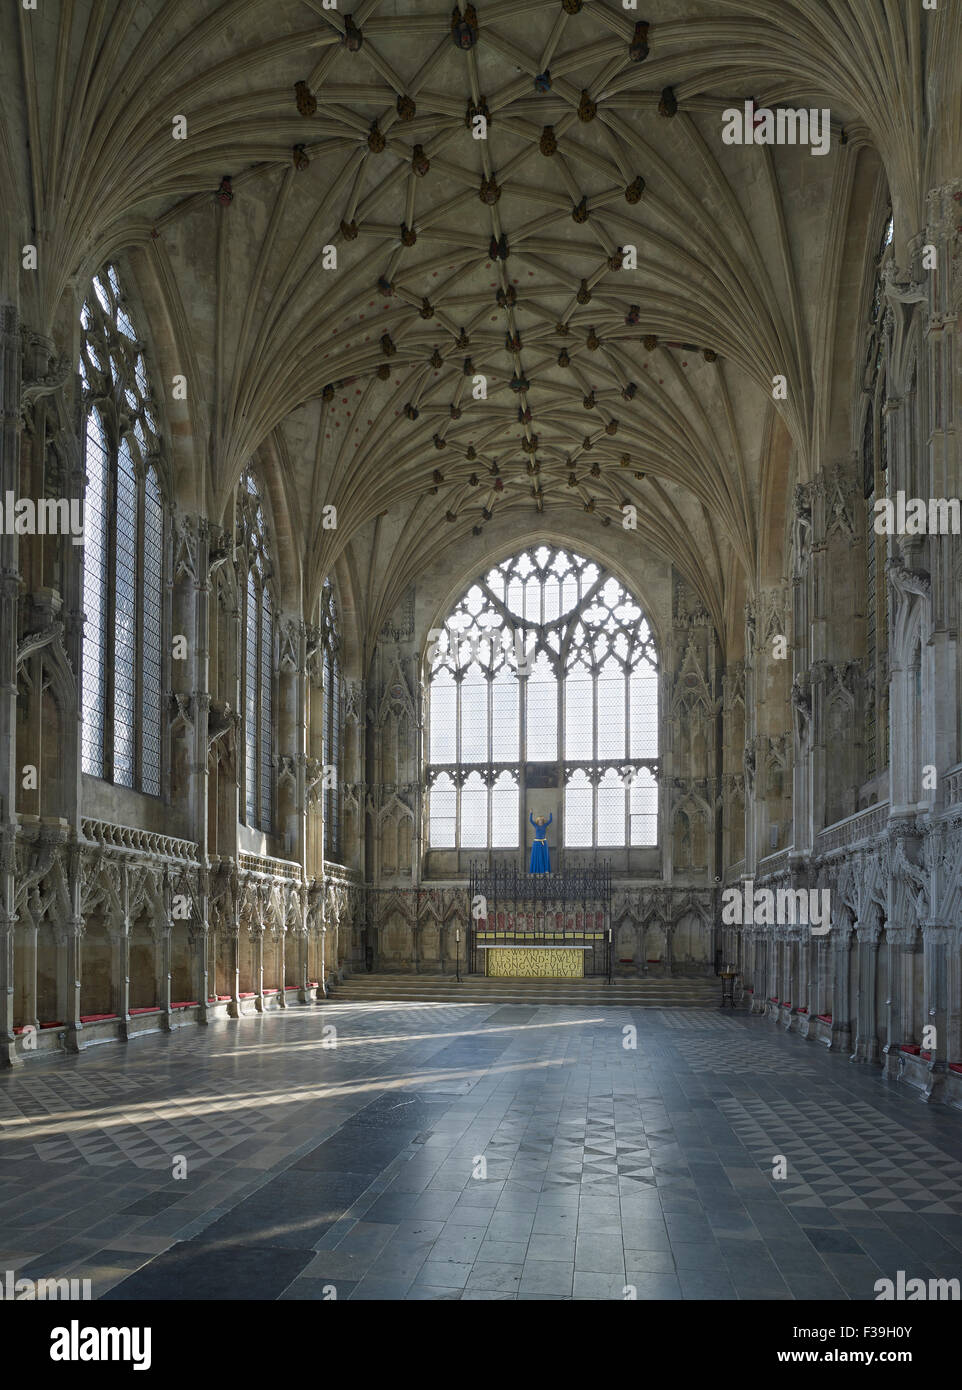 Ely Cathedral Lady Chapel interior - Stock Image